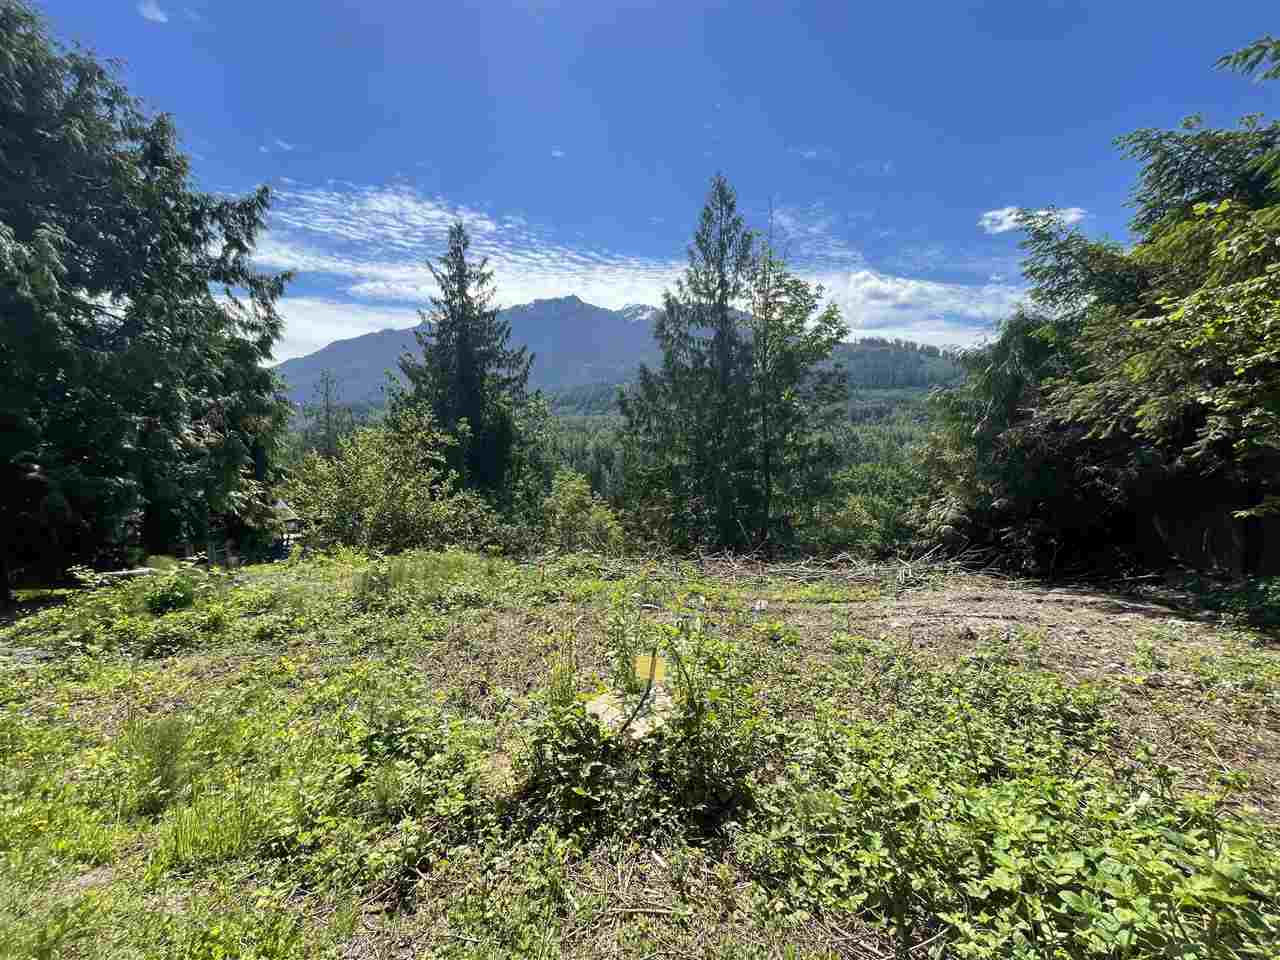 Beautiful building site with picturesque views of Chilliwack mountain range. Minutes to Chilliwack River. Outdoor paradise with hiking, quading and mountain biking right out your front door. Water rights in place for pure artisan spring water. Septic approvals in place. Site has been surveyed complete with topographical map. Site is ready to submit your vision  to the Fraser Valley Regional District.